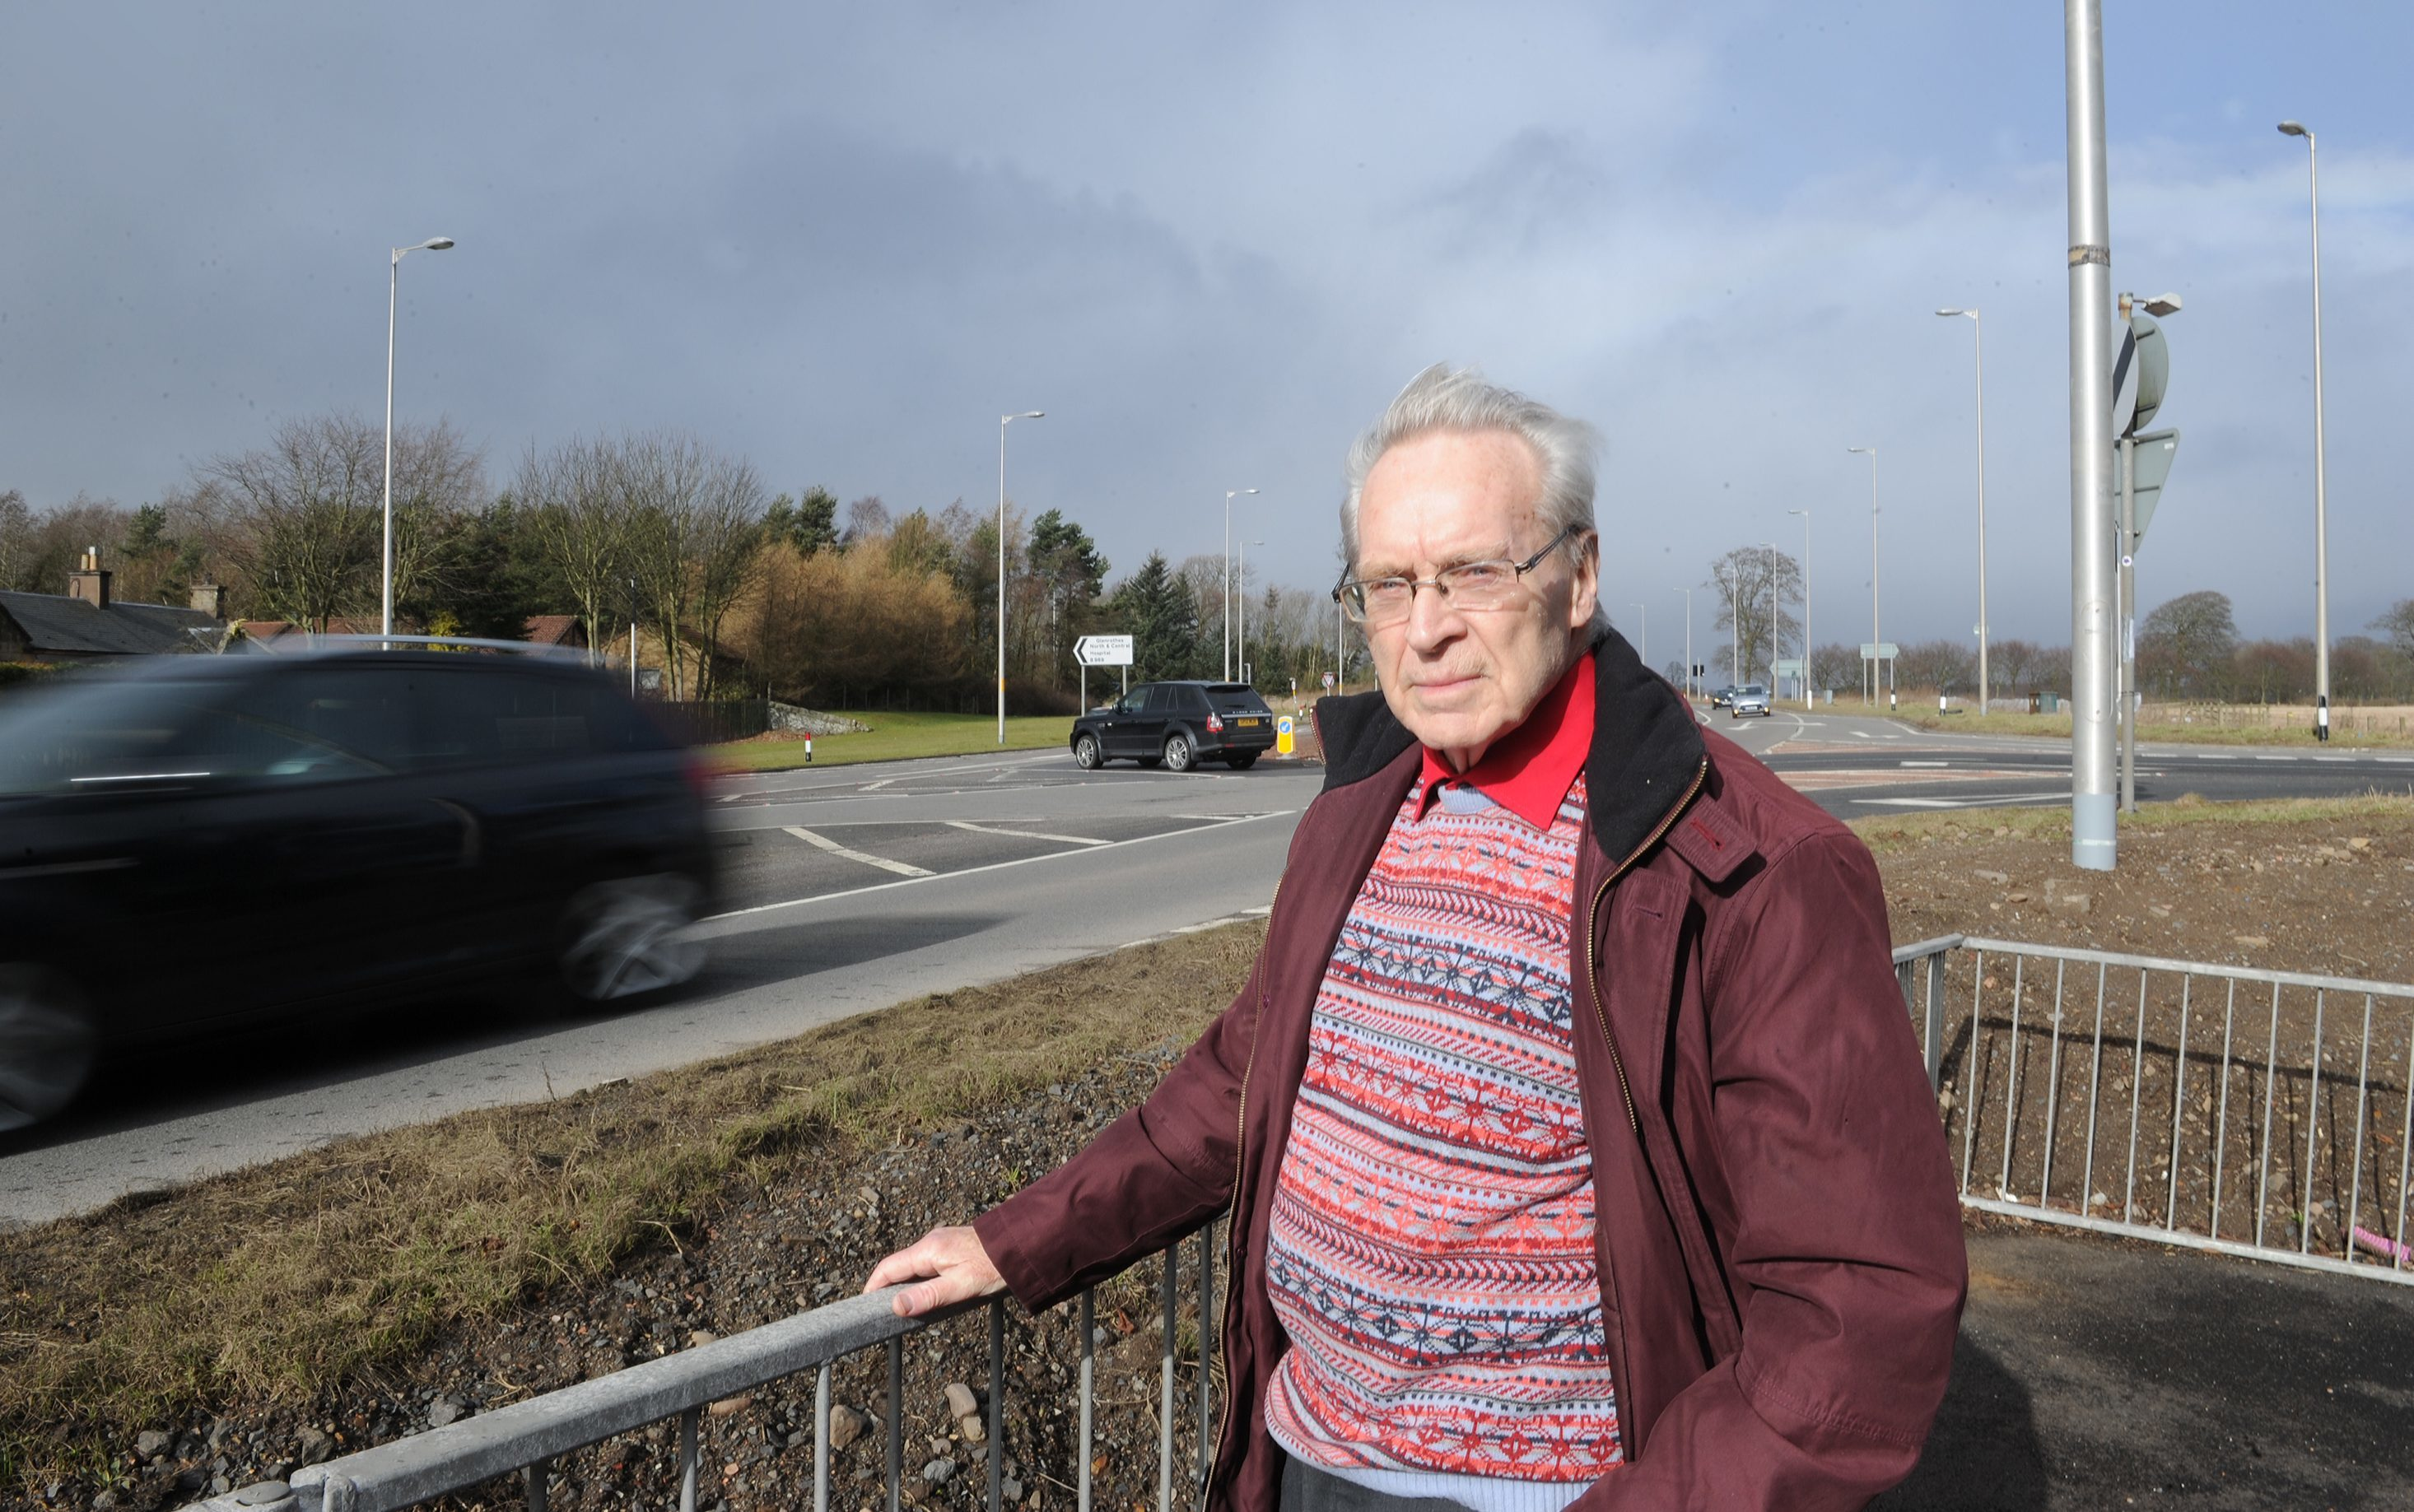 Pictured beside the Balfarg junction on the A92 near Glenrothes is Ron Page (convenor of the Glenrothes Area Furures Group) who is campaigning for safety improvements to the road